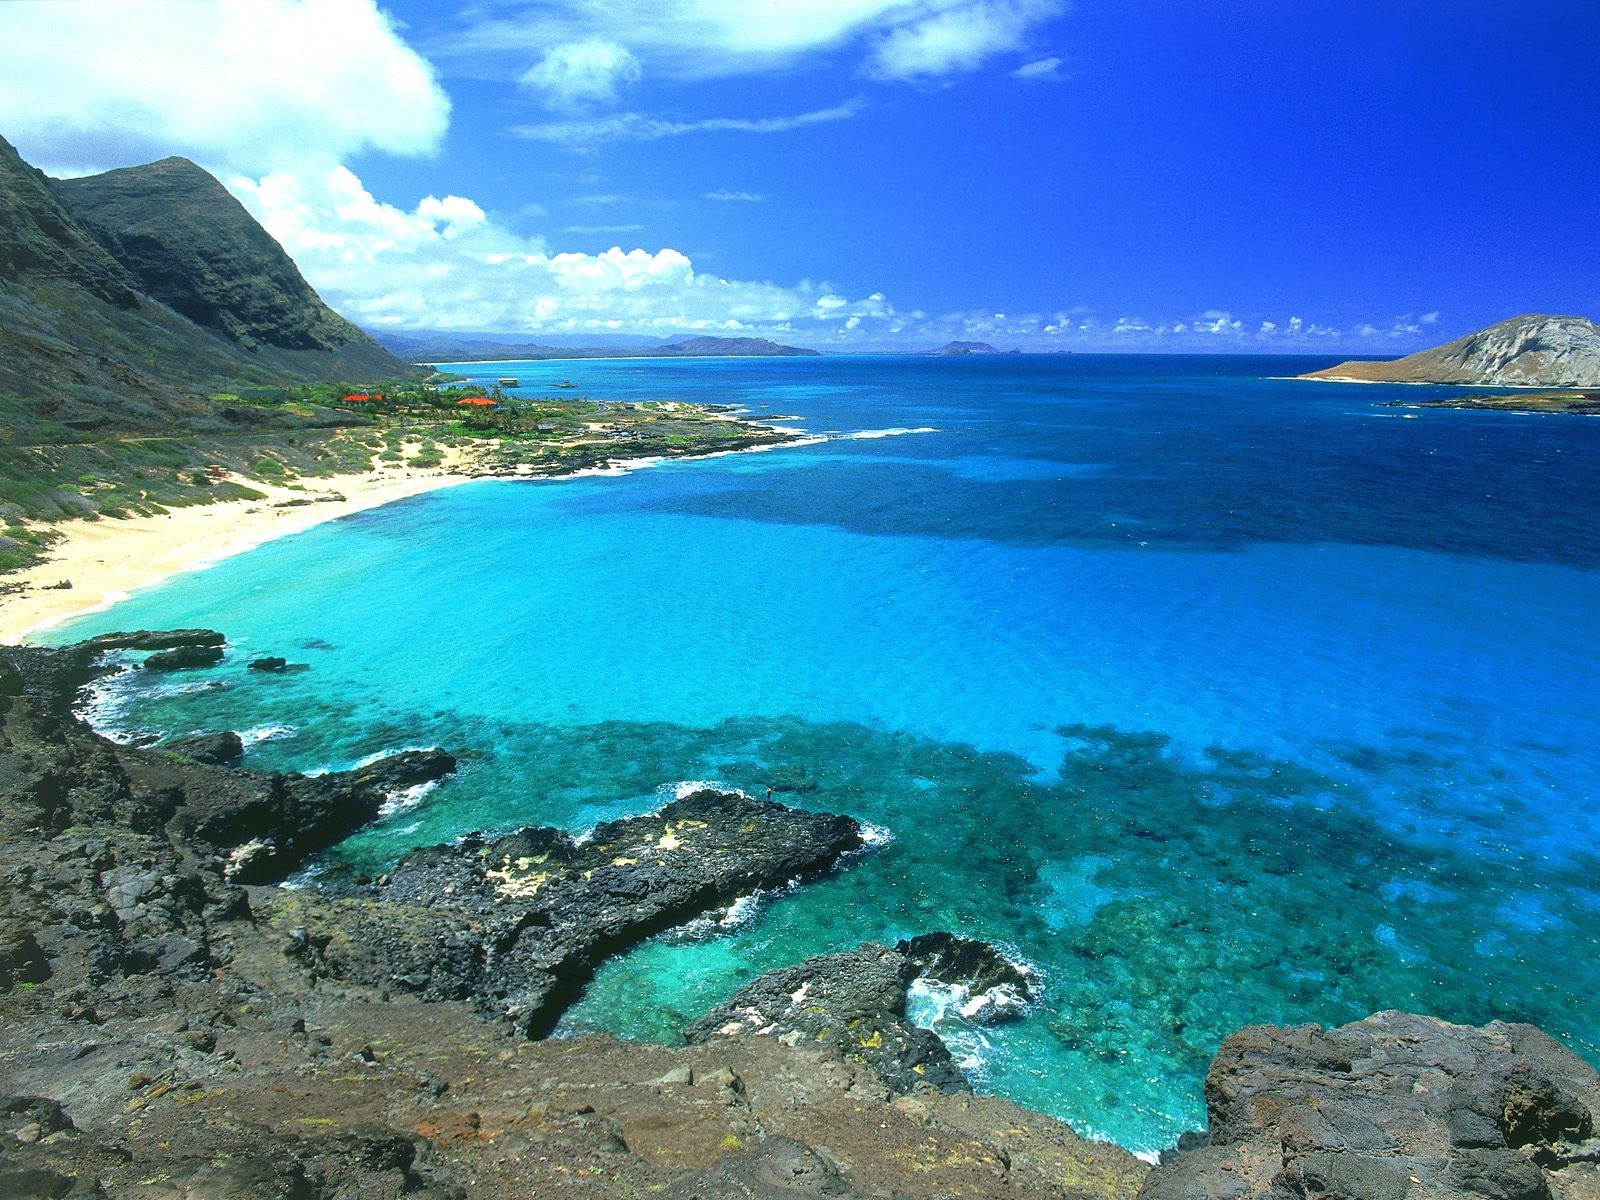 Amazing Hawaii Wallpaper